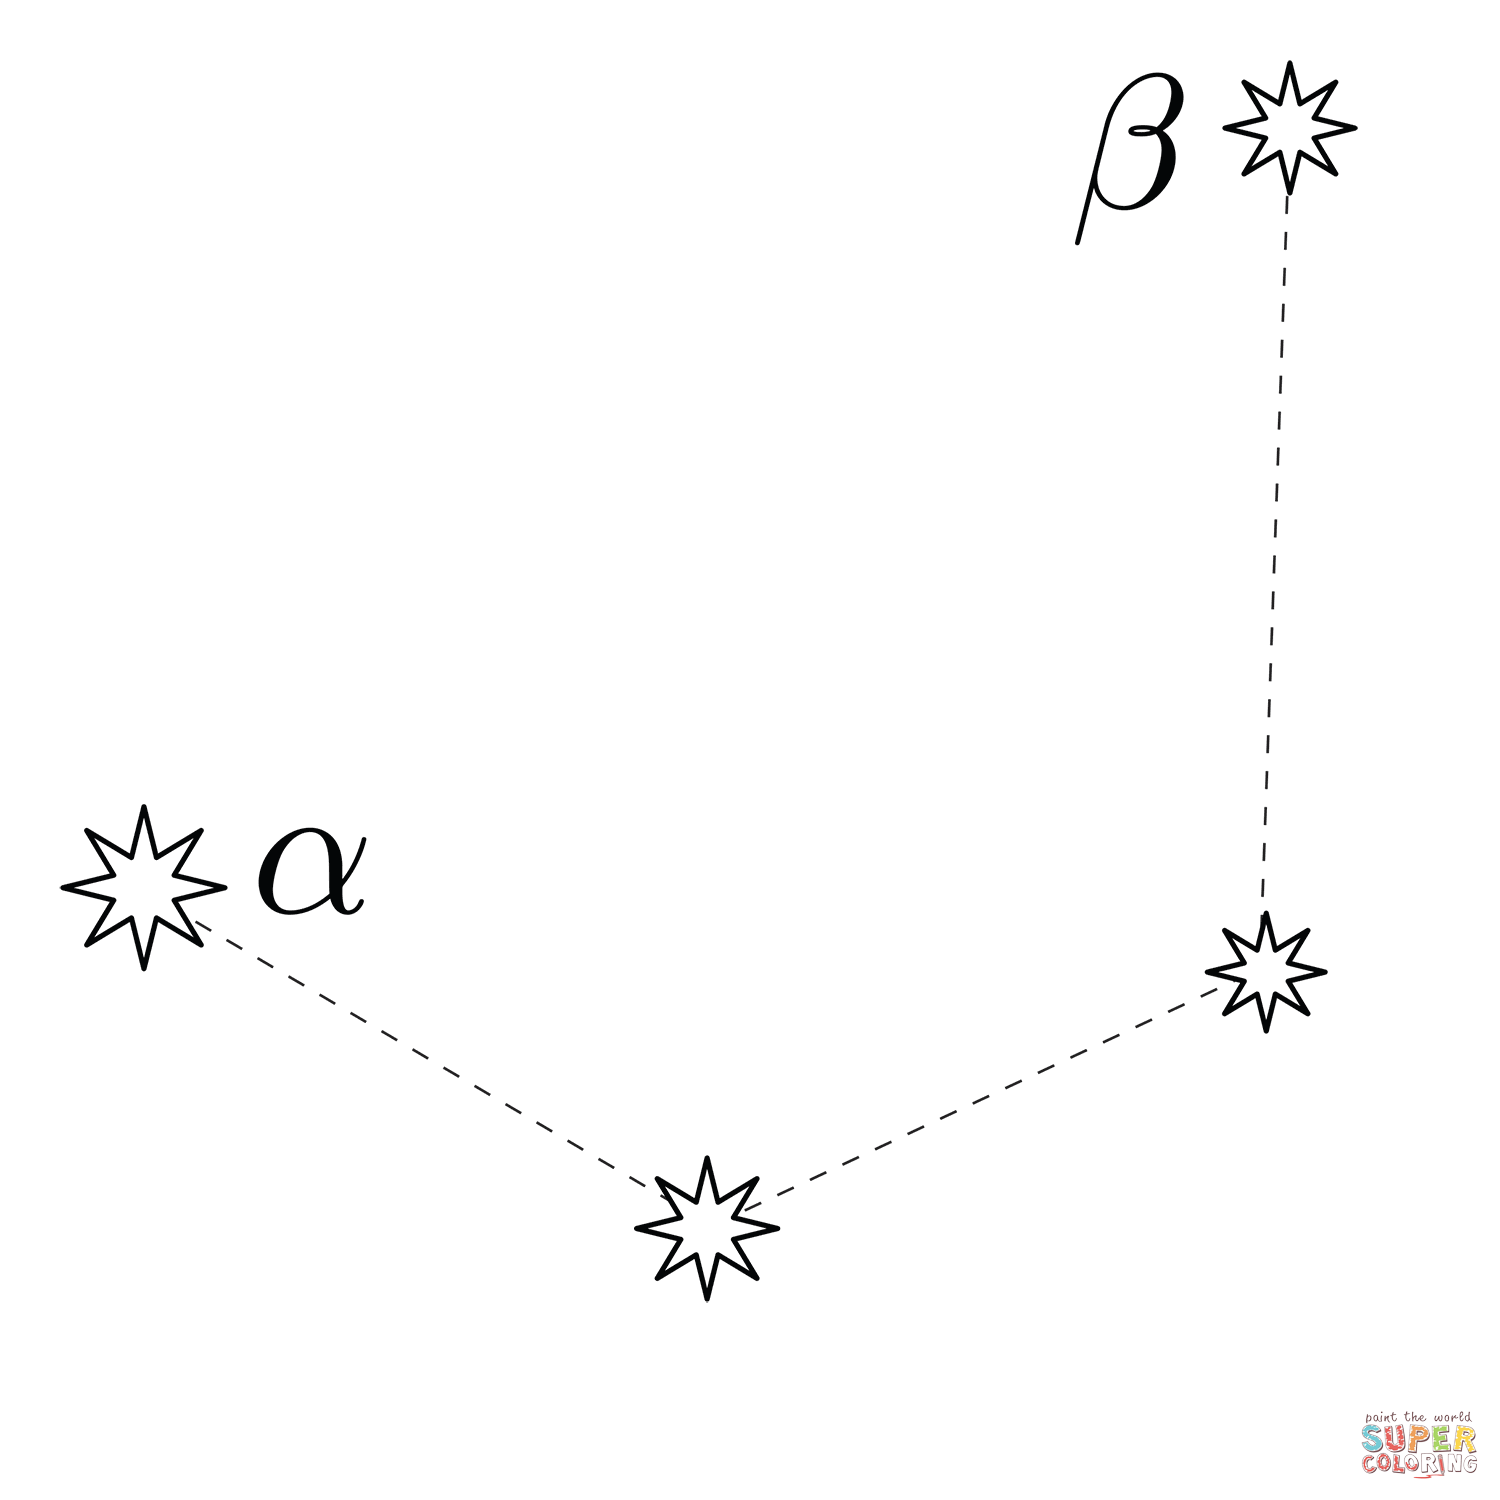 Mensa Constellation Coloring Page